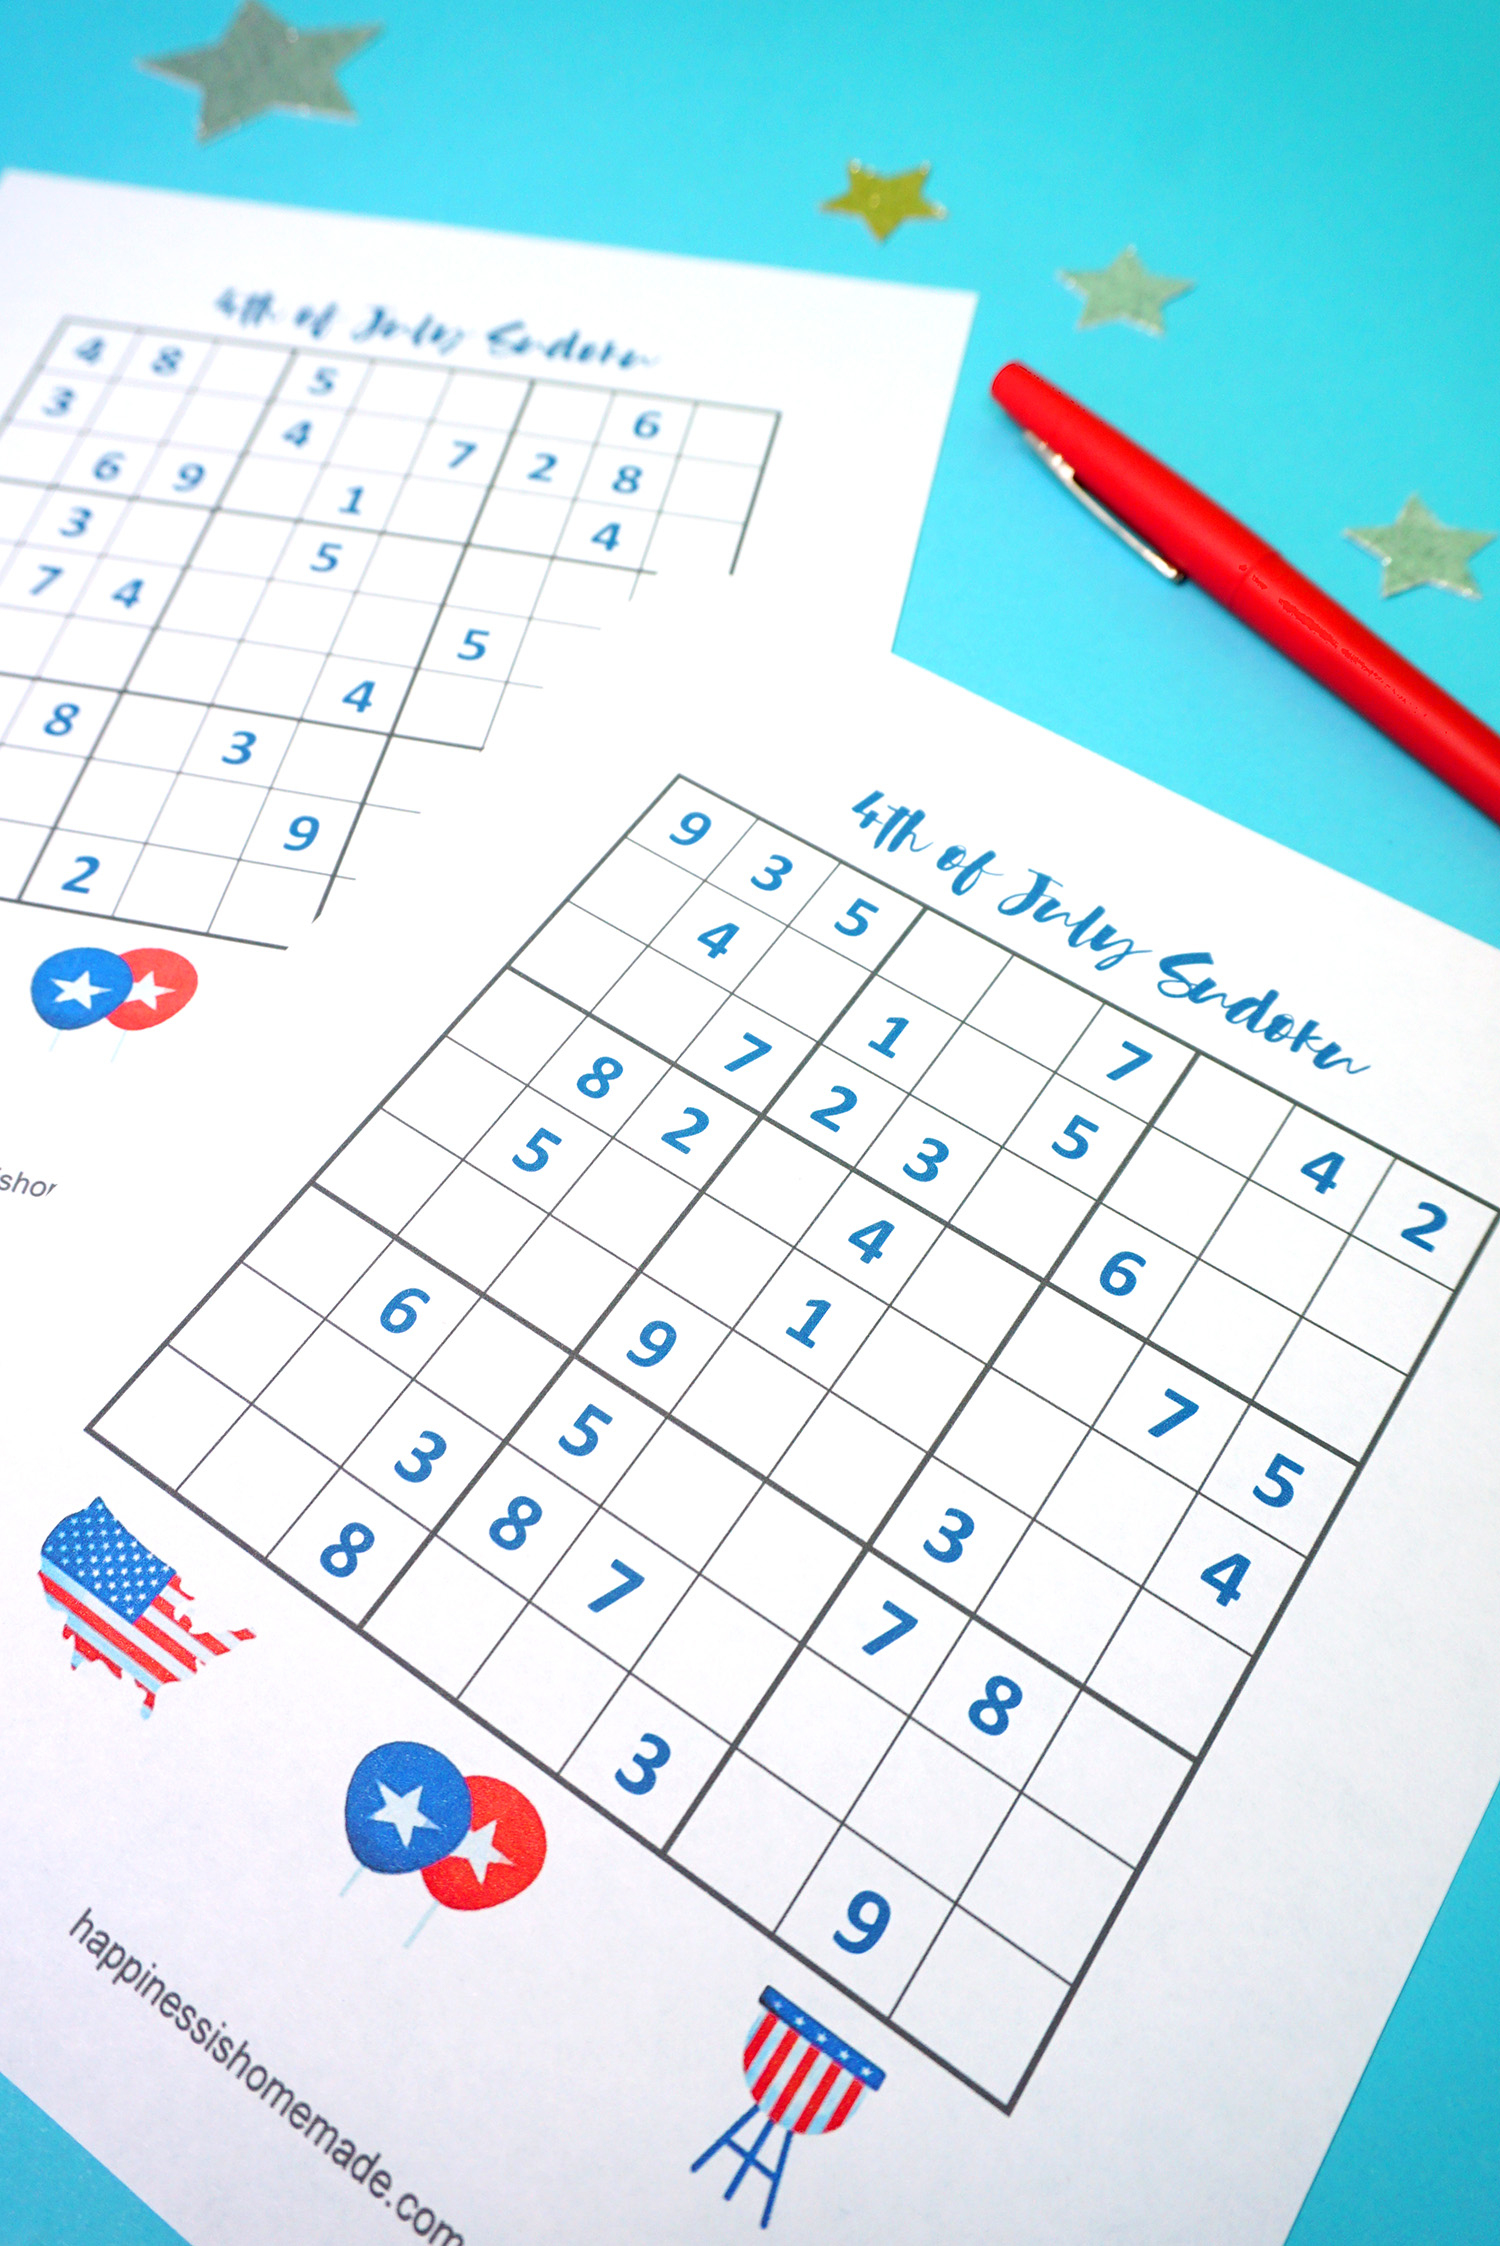 4Th Of July Printable Sudoku Puzzles + Logic Puzzle - Happiness Is - Printable Puzzles To Pass Time